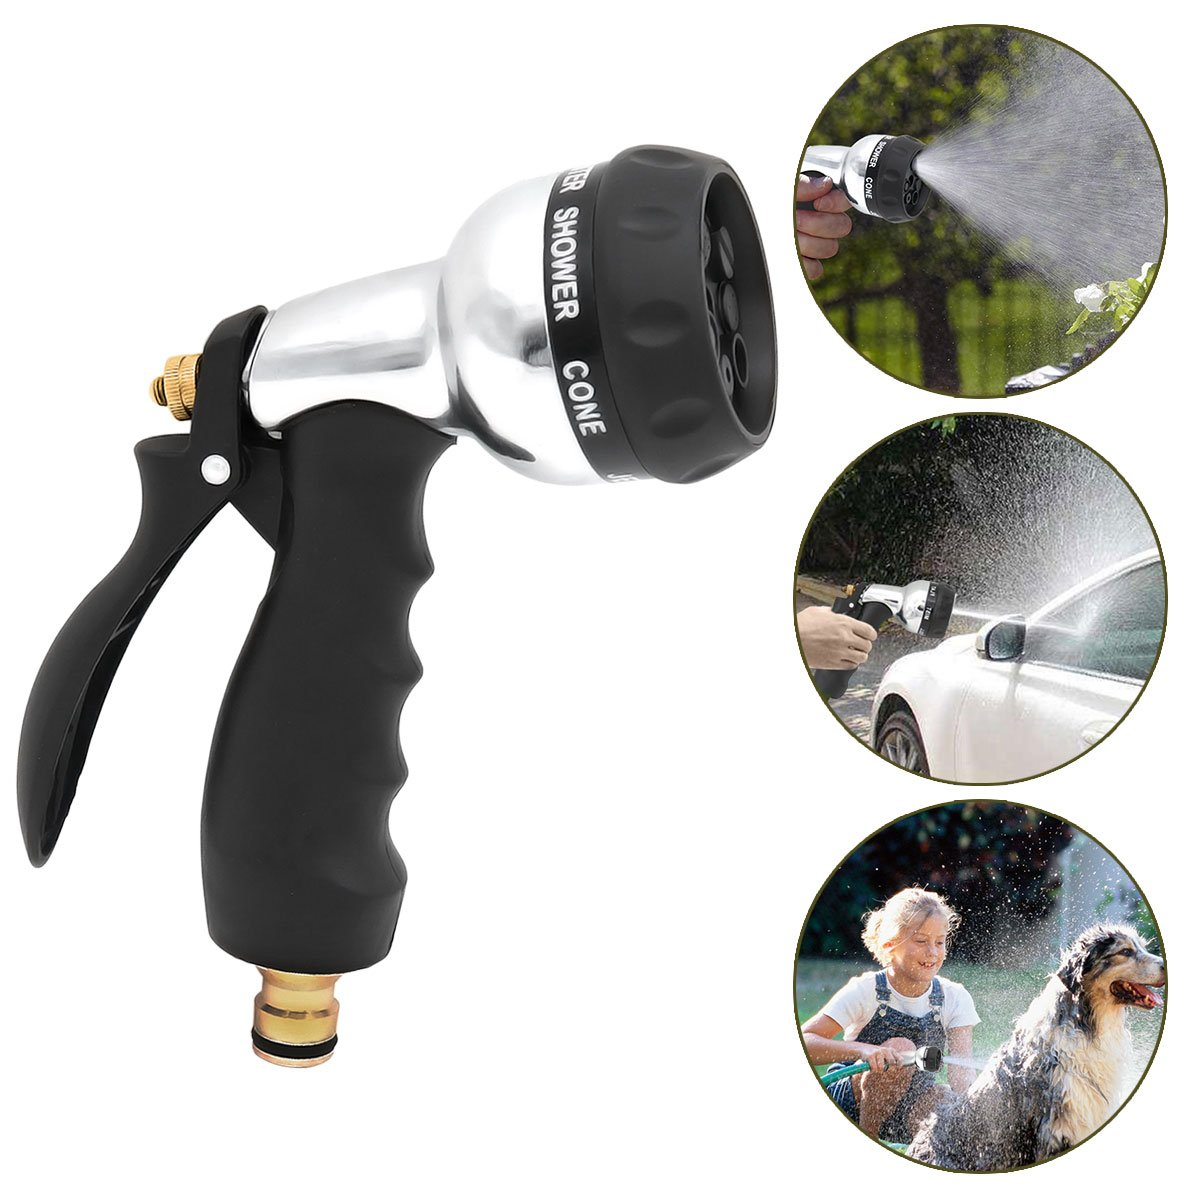 Garden Hose Nozzle, Aodoor Spray Gun 7 Different Spray Settings Spray Nozzle - Perfect for Car Wash, Cleaning, Watering Lawn, Garden, Plants Washing Dogs & Pets etc